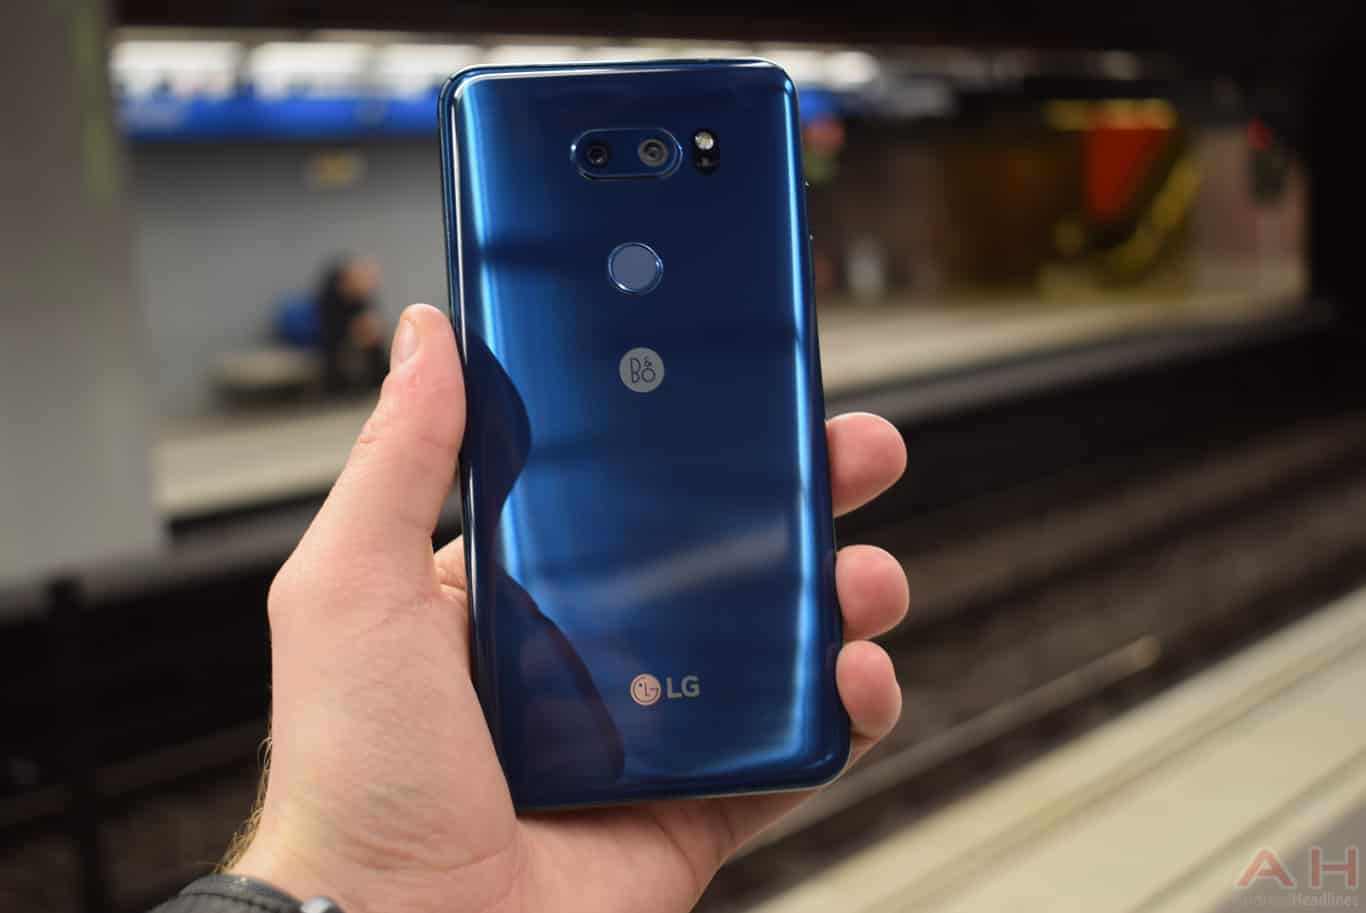 LG V30S ThinQ Specs: Some additional RAM and lots of AI